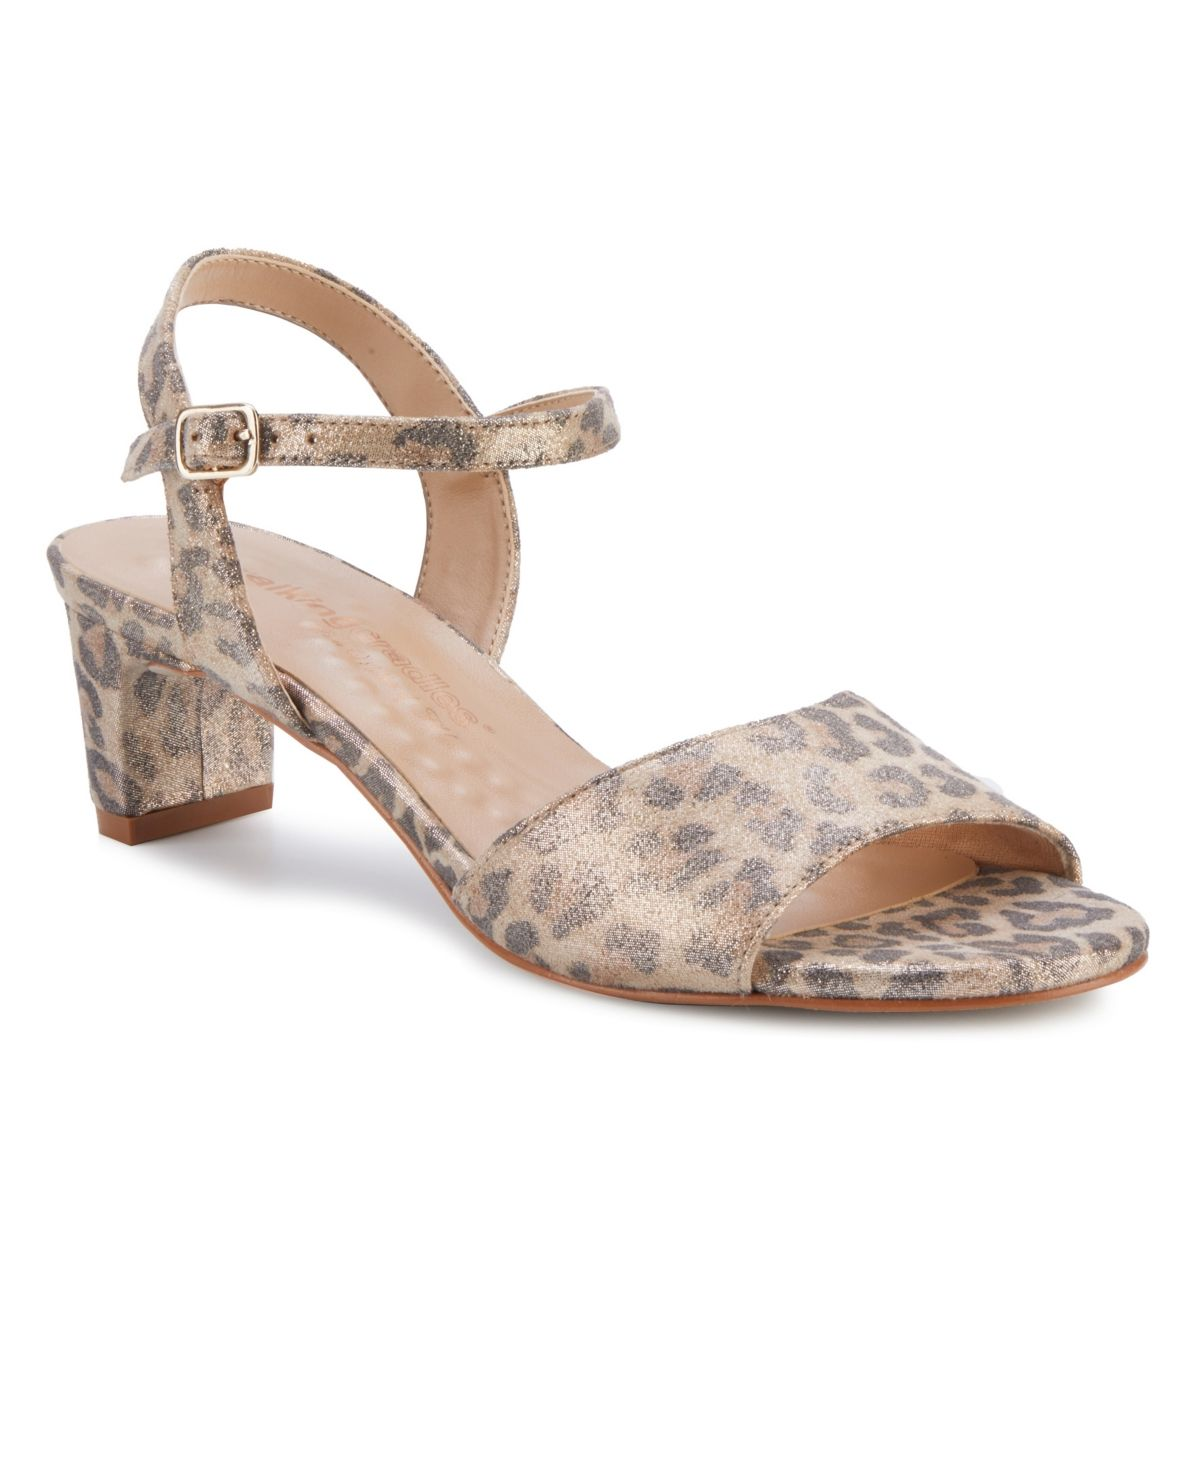 Leap into total comfort with Lydia.A gorgeous dressy sandal just in time for a blooming new season, Lydia is available in a variety of unique colors and materials. Featuring an adjustable quarter strap and our signature tiny pillows construction, you'll spring forward into endless comfort bliss.